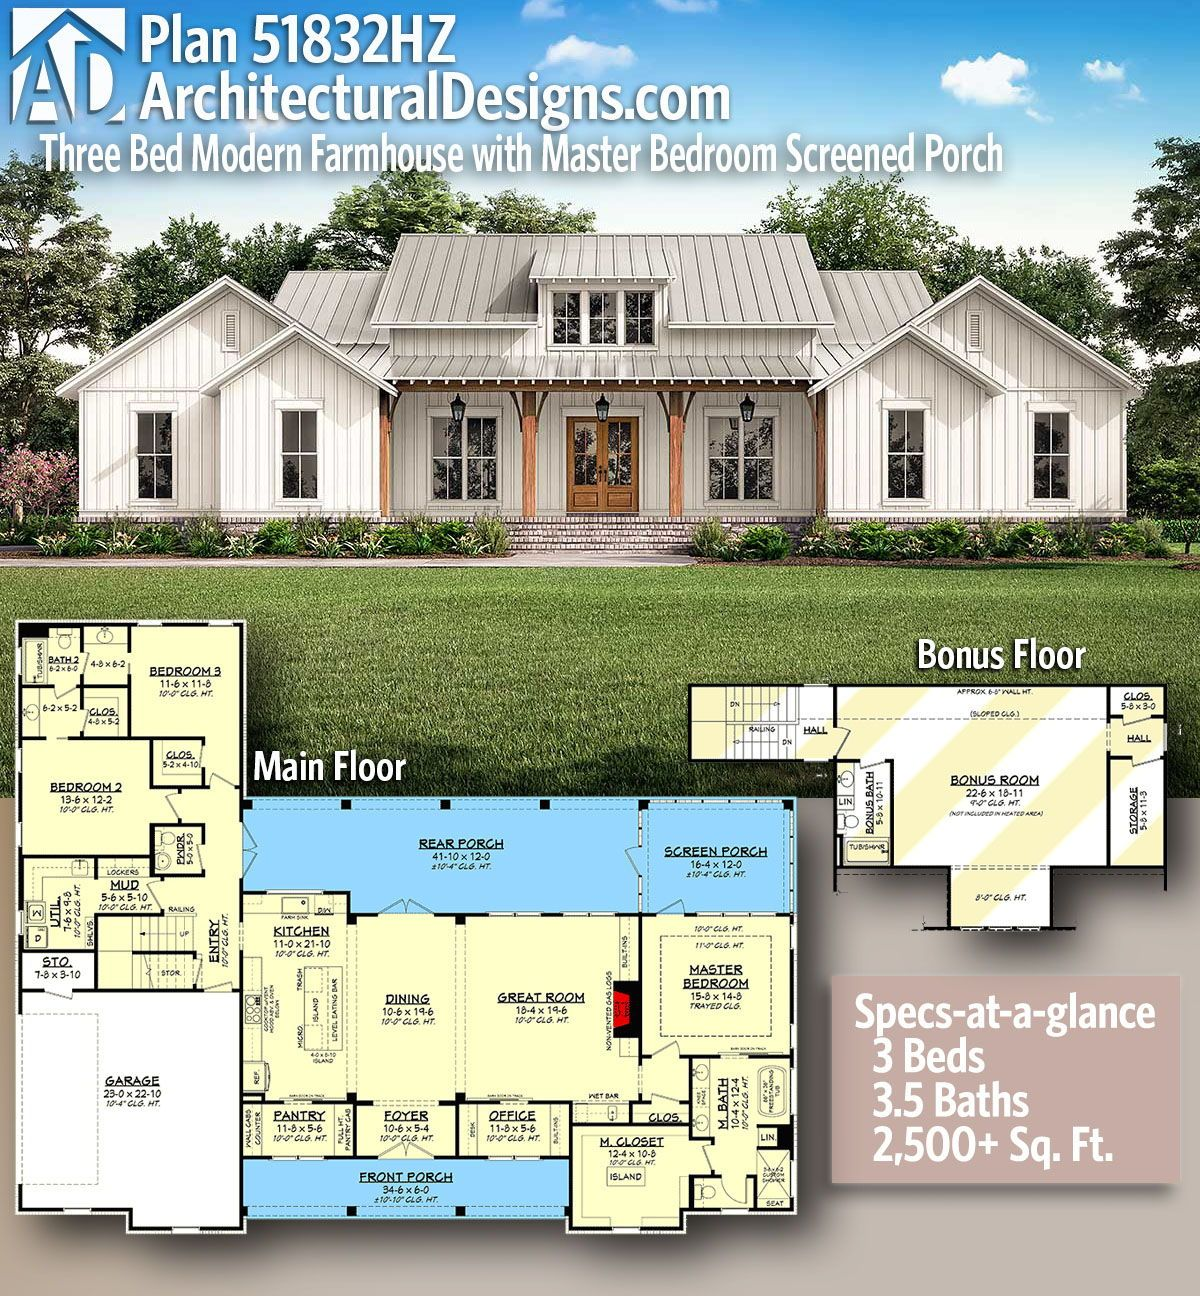 Plan 51832hz Three Bed Modern Farmhouse With Master Bedroom Screened Porch House Plans Farmhouse Farmhouse Floor Plans Dream House Plans